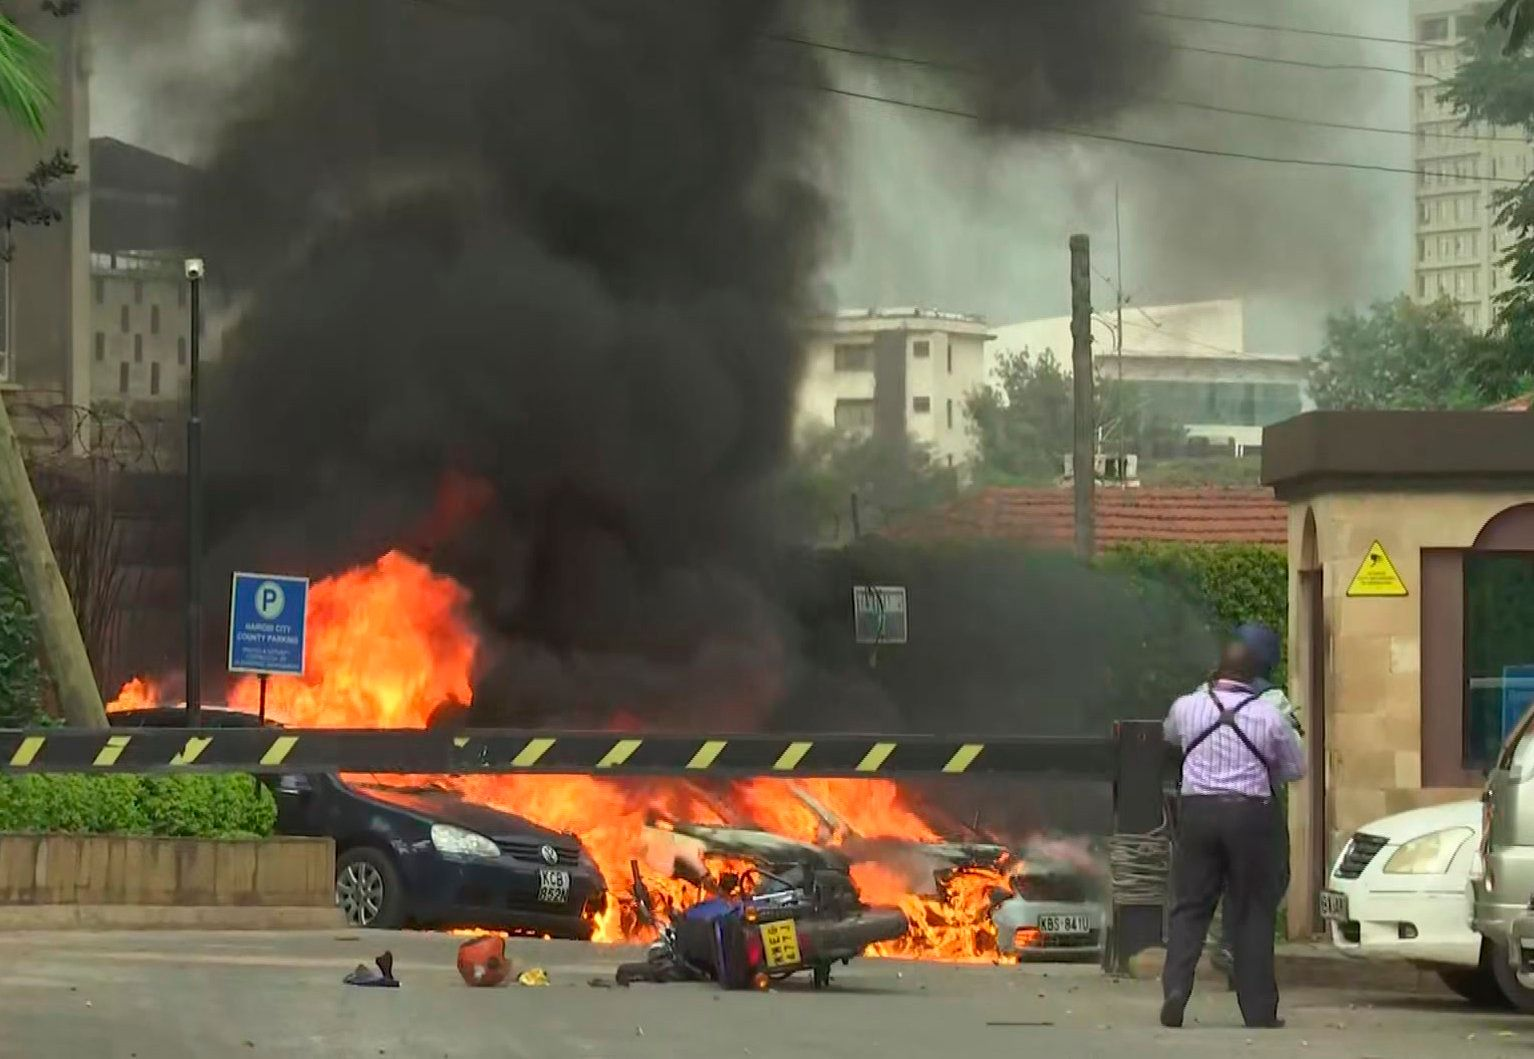 This frame taken from video shows a scene of an explosion in Kenya's capital, Nairobi, Tuesday Jan. 15, 2019. Gunfire and explosions were reported near an upscale hotel complex. (AP Photo/Josphat Kasire)